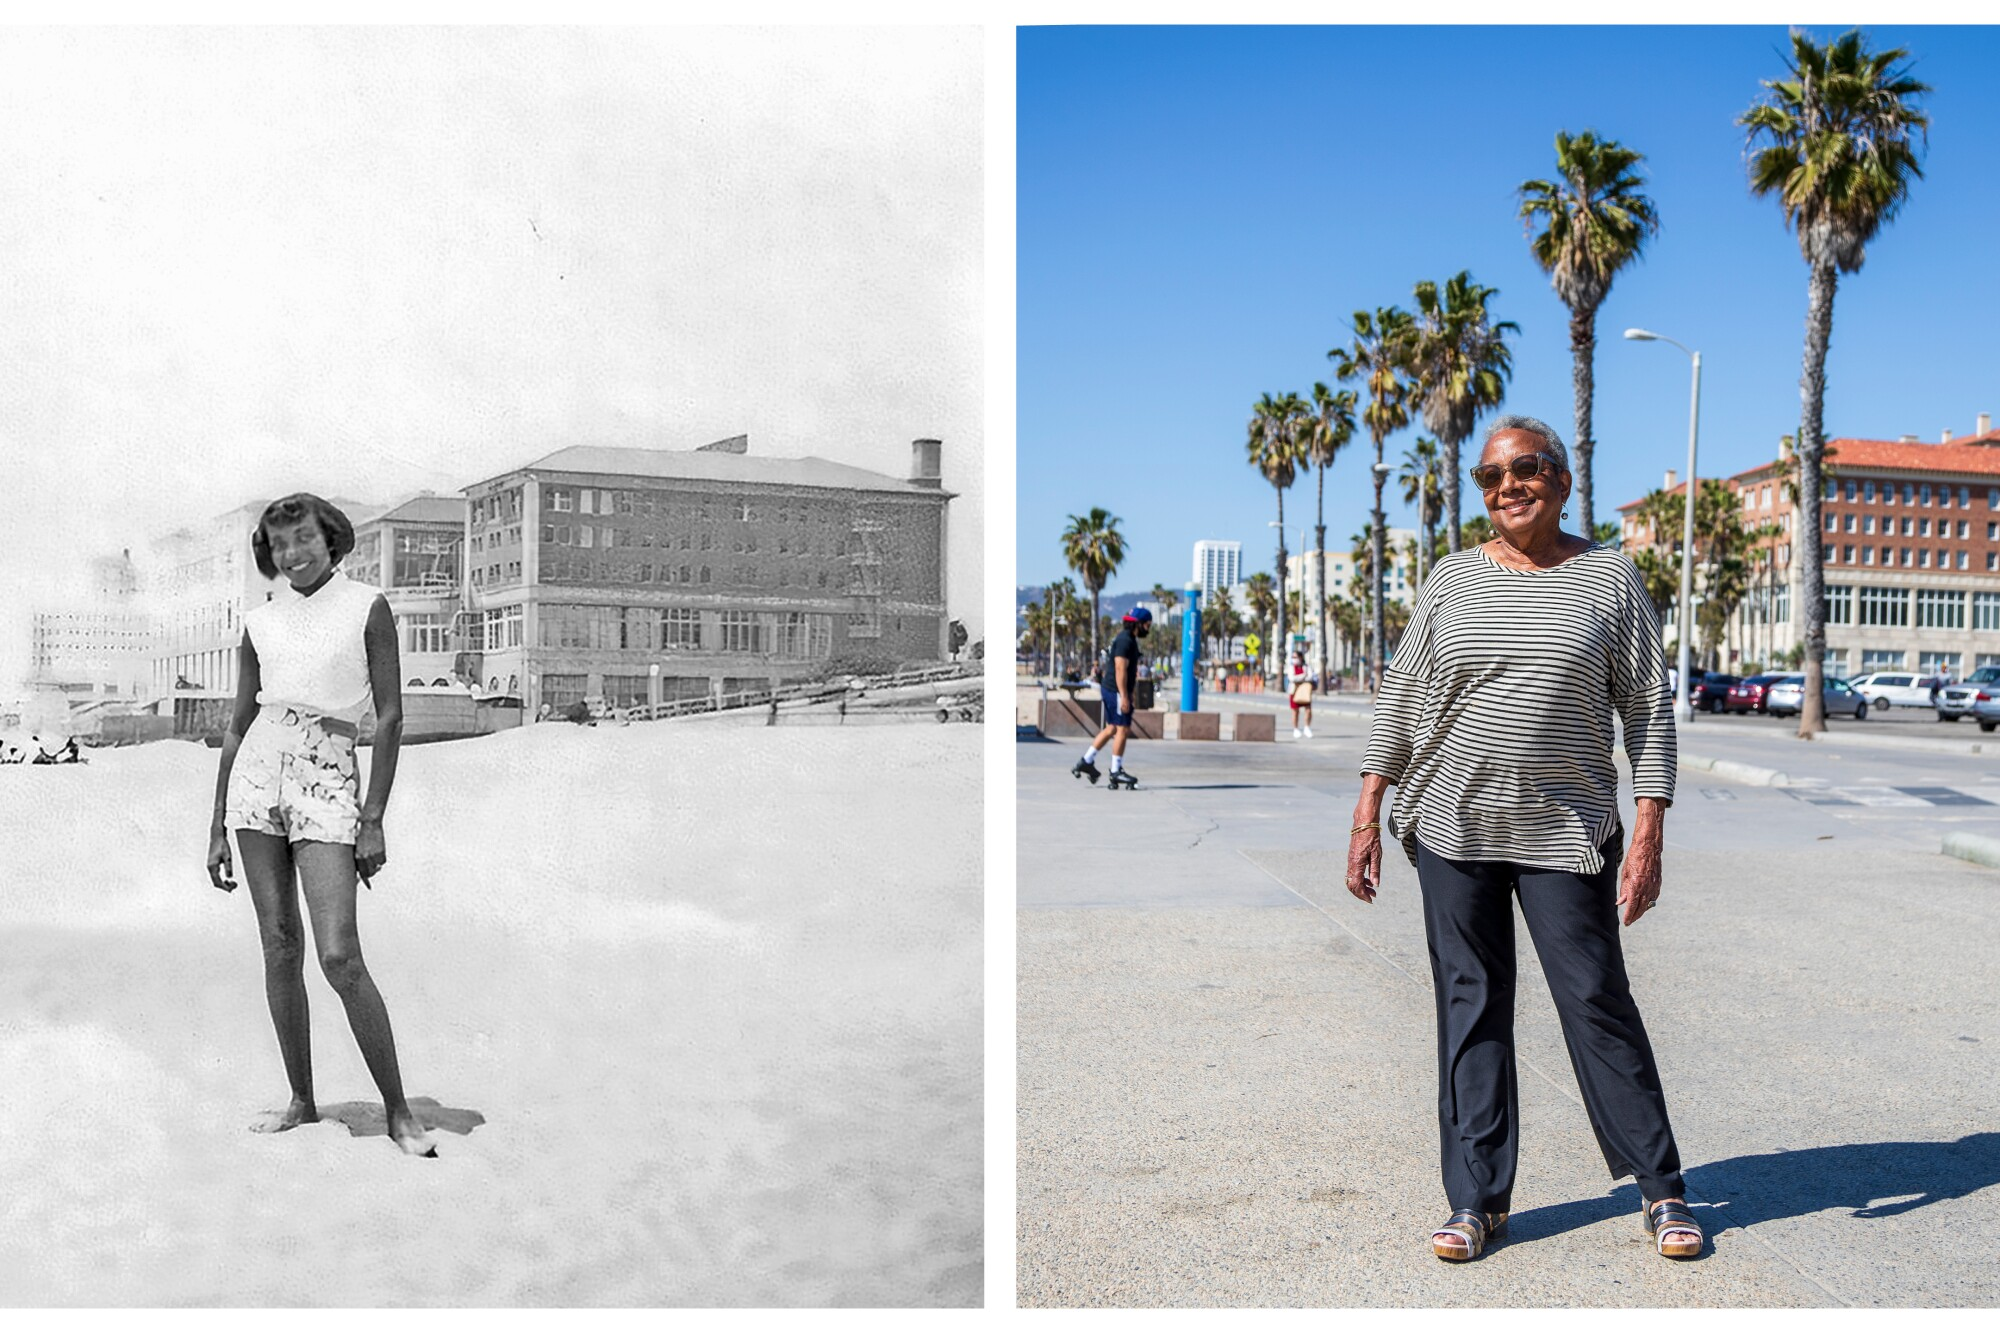 Cristyne Lawson at the beach in 1953 as a young girl, at left, and today.